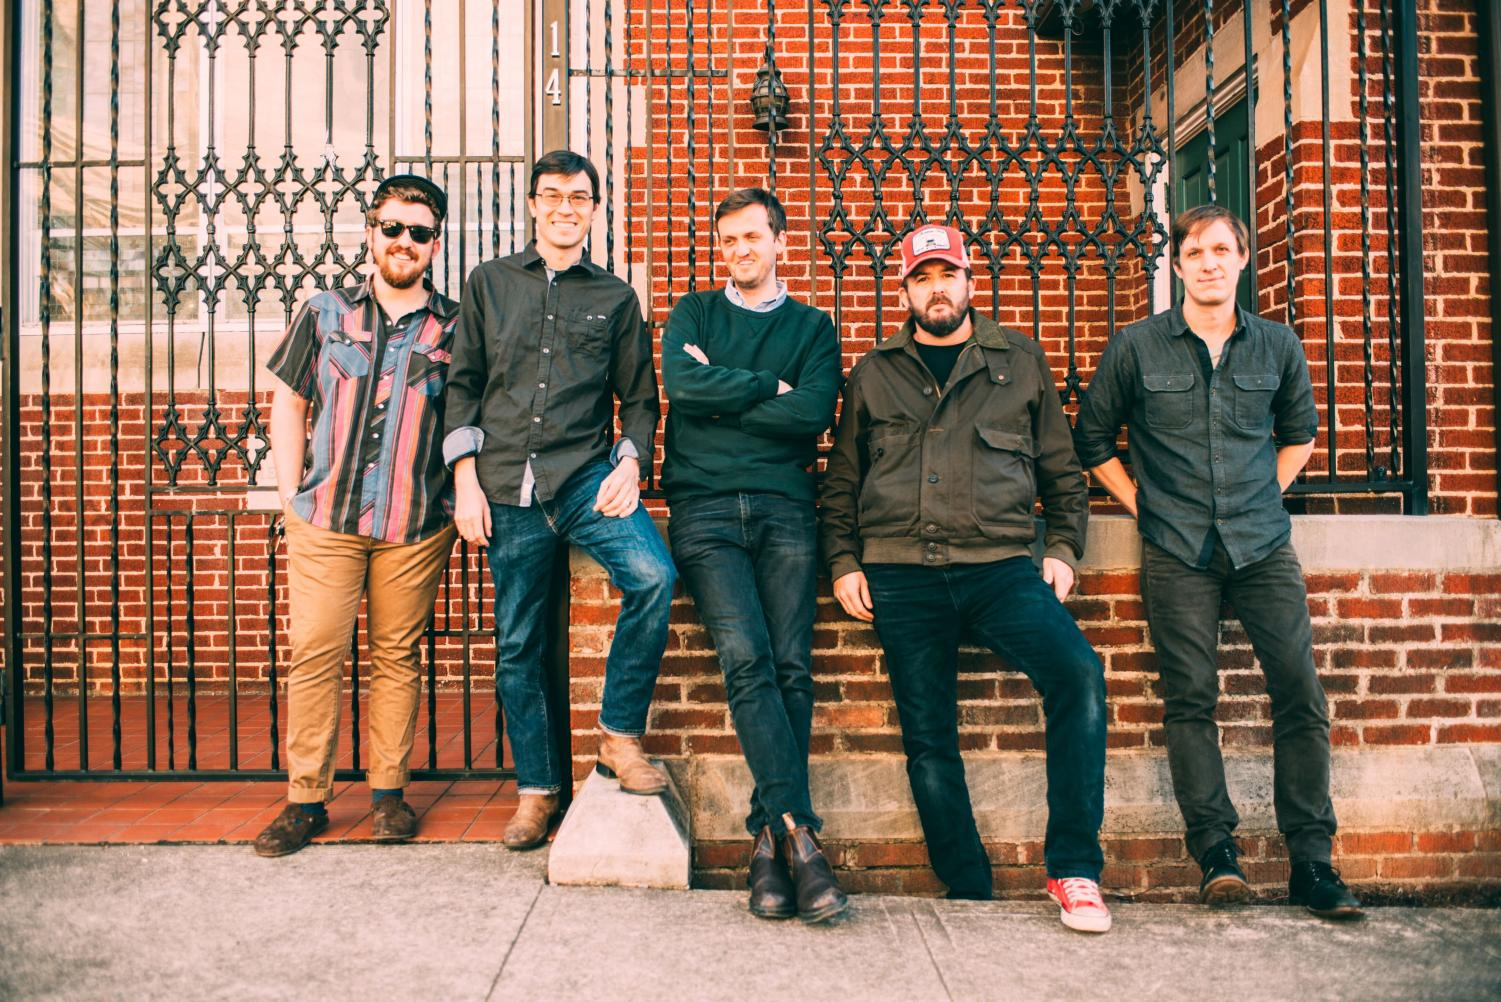 Town Mountain will perform at The V Club at 10 p.m. Nov. 23.